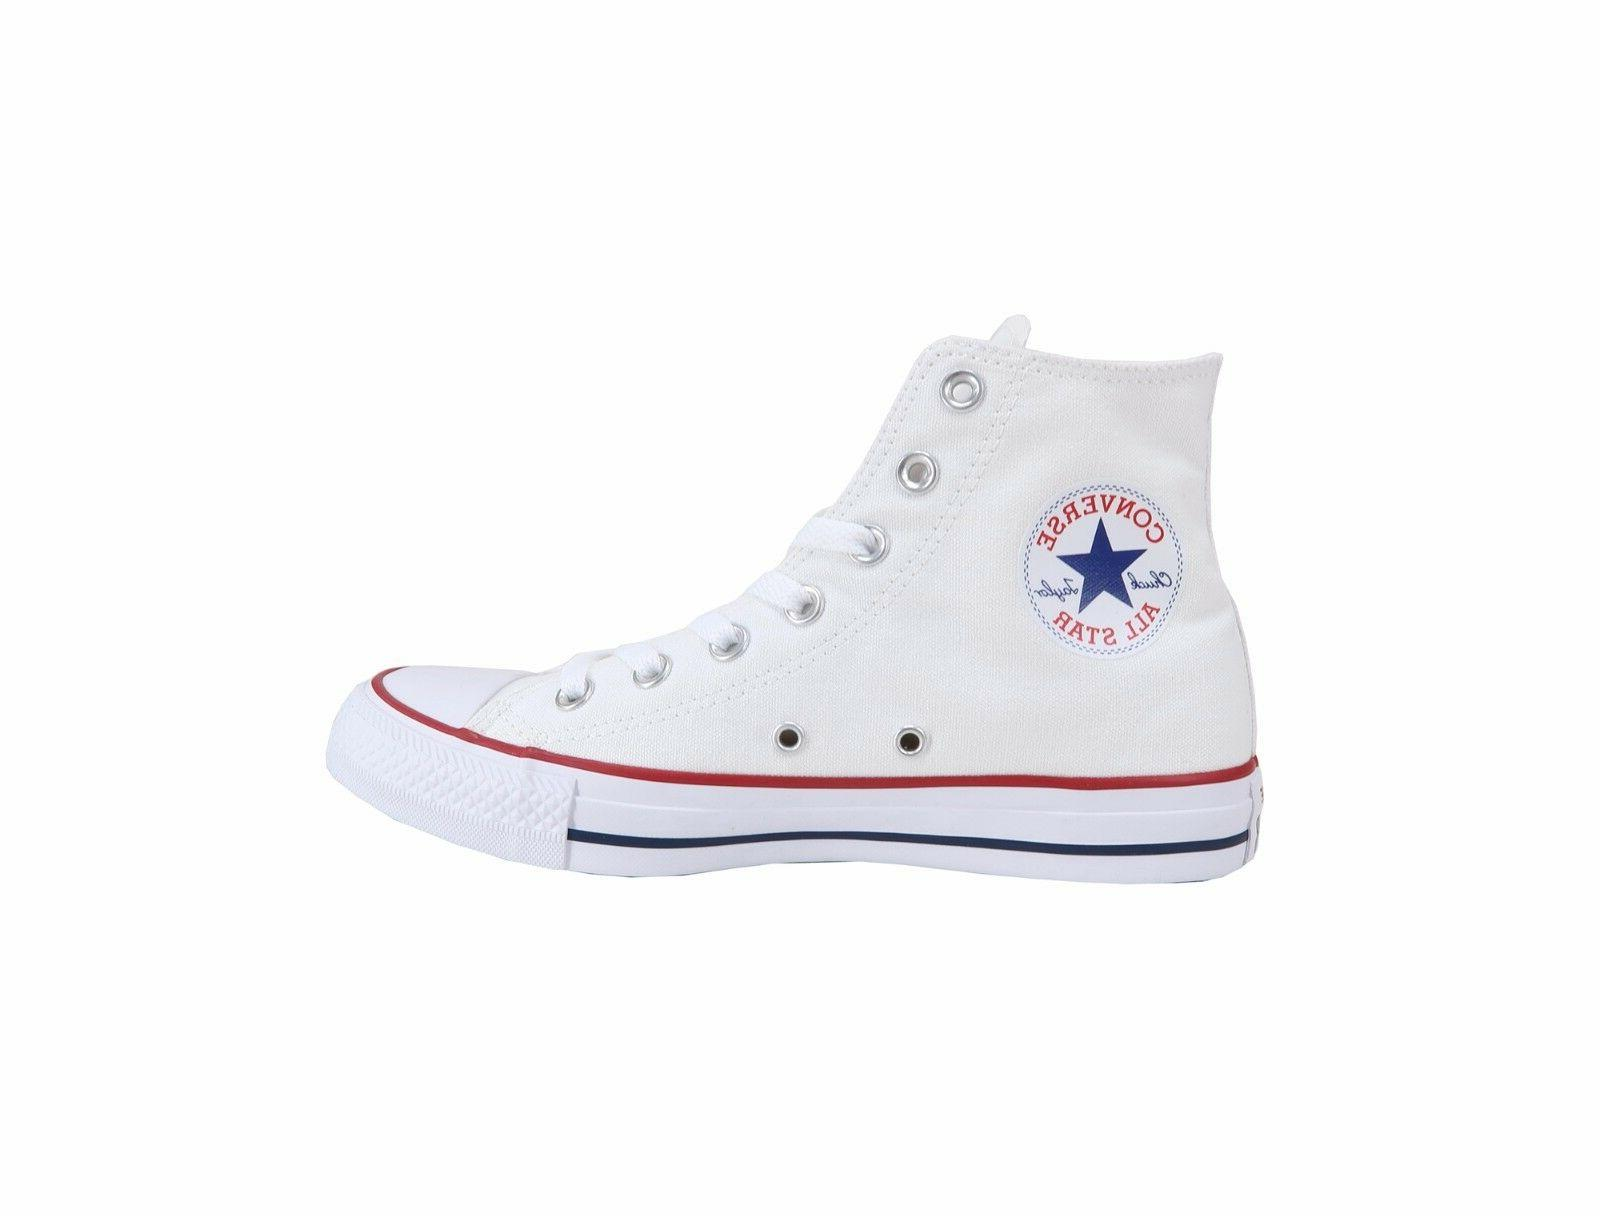 chuck taylor all star high top canvas